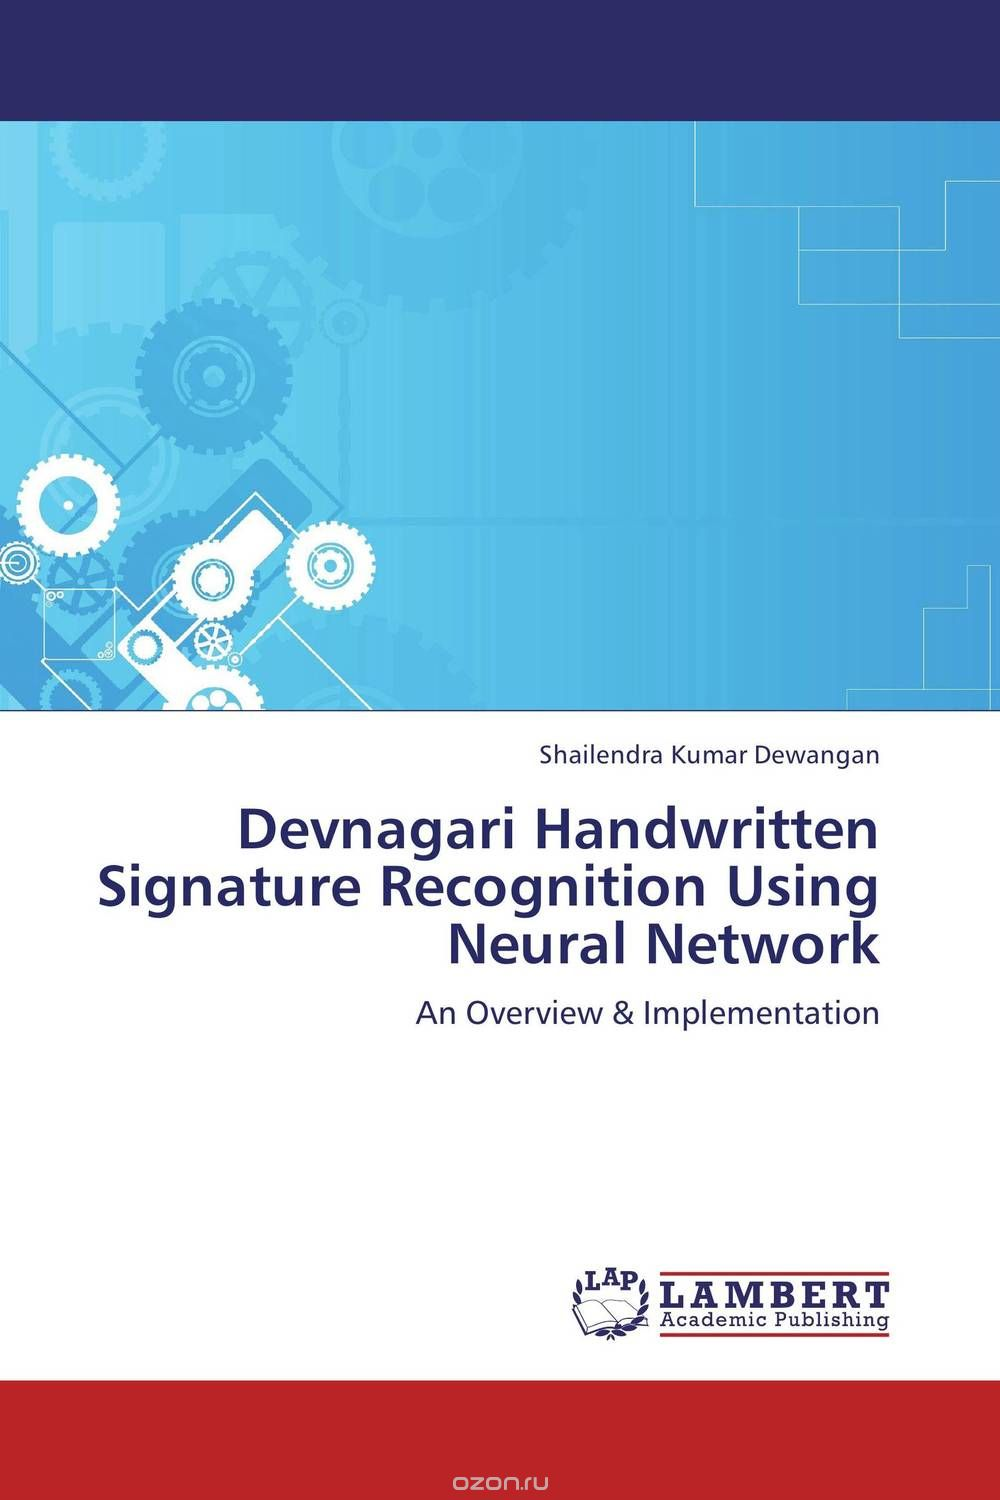 Devnagari Handwritten Signature Recognition Using Neural Network